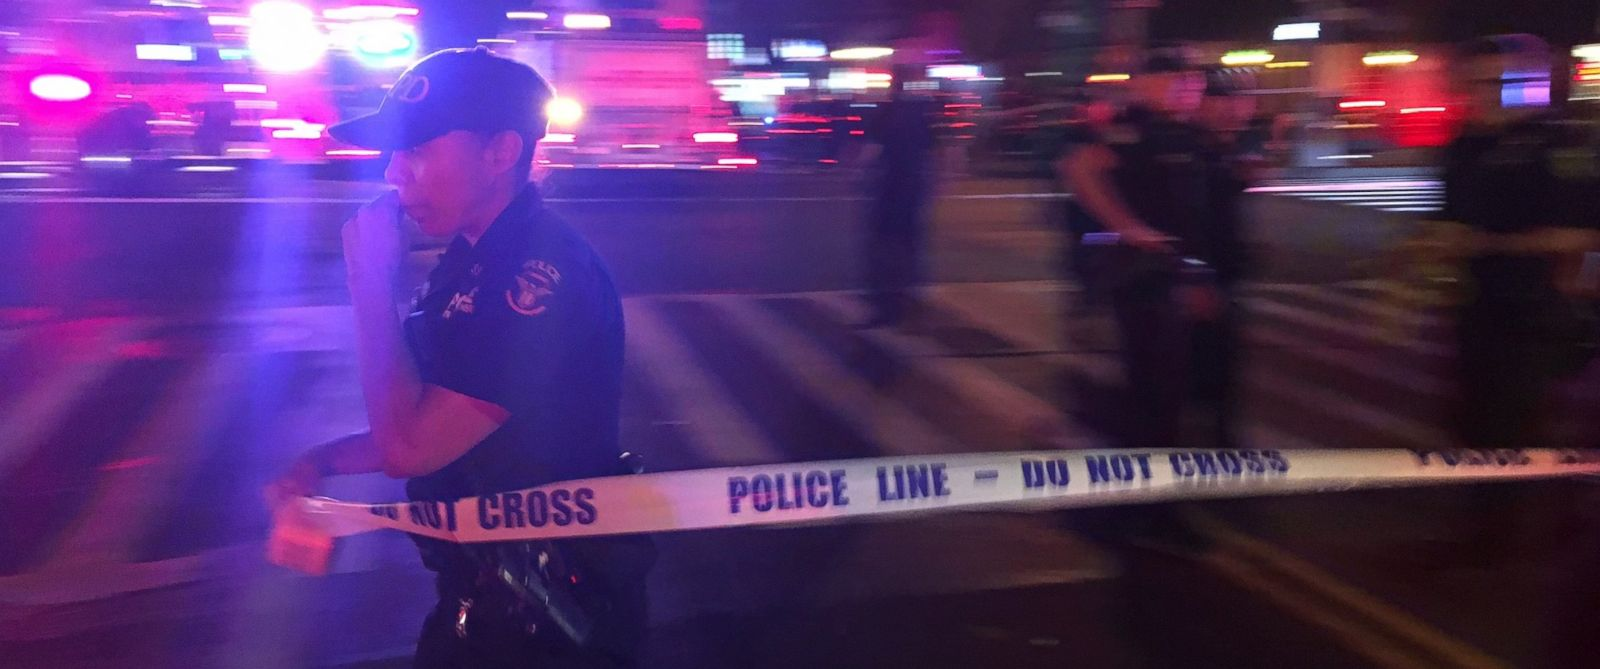 At least 25 injured after explosion in New York City